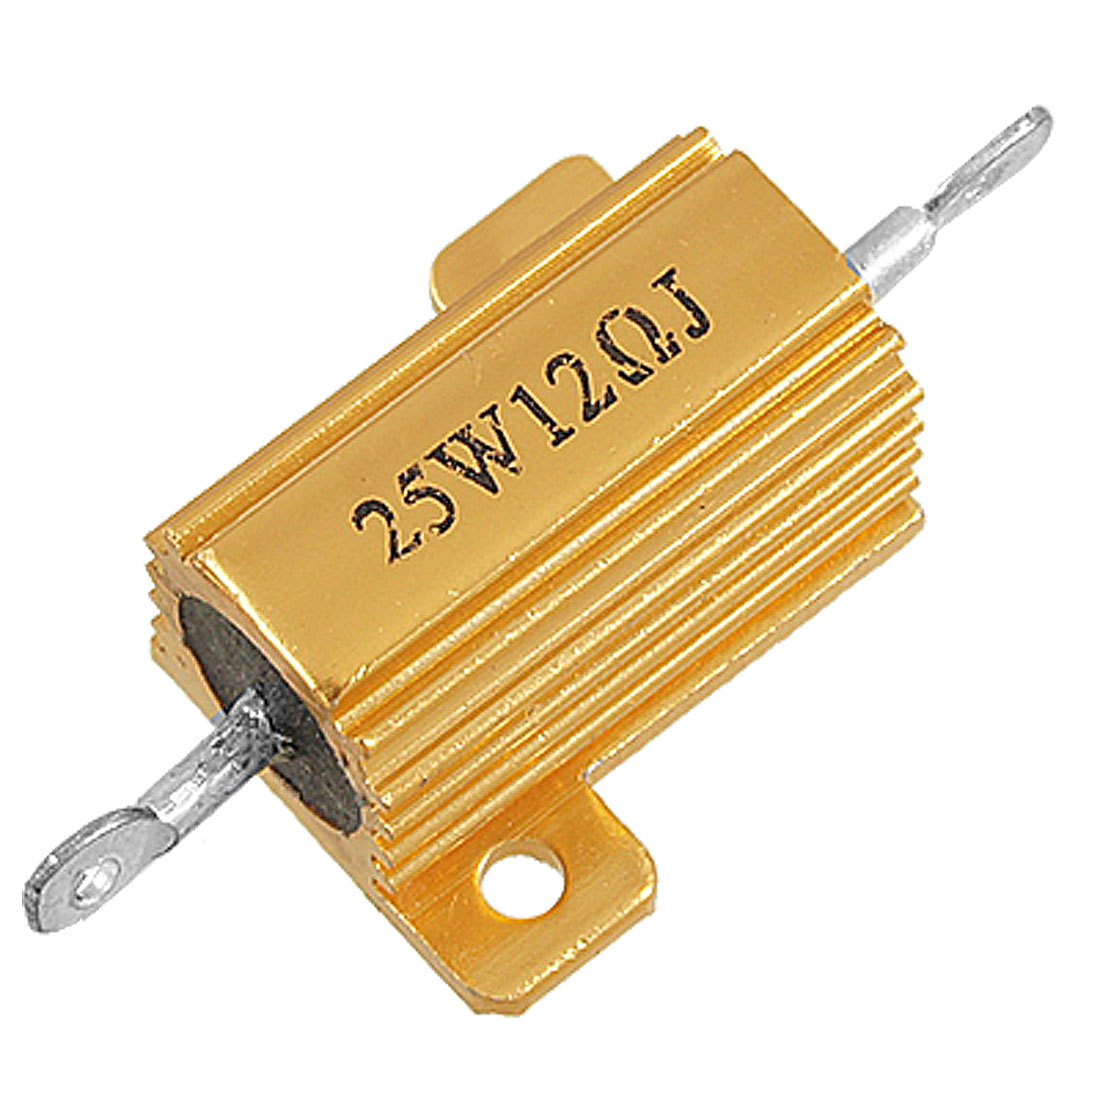 25W 12 Ohm 5% Chasis Mounted Aluminum Housed Wirewound Resistor Gold Tone